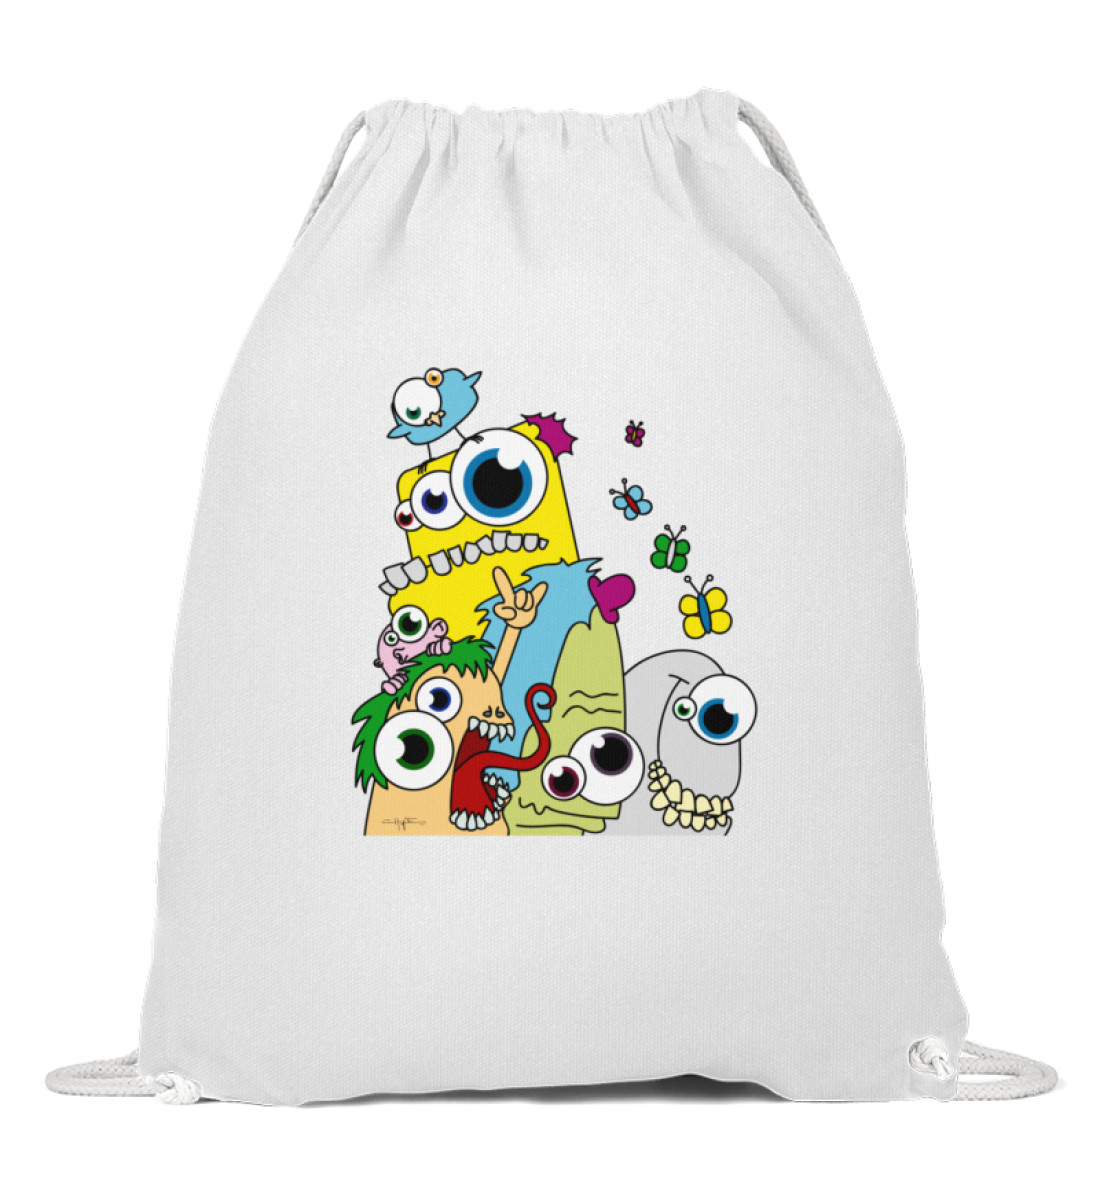 Gymsack - Popart berlin-monster-art berlinmonsterart sport tasche